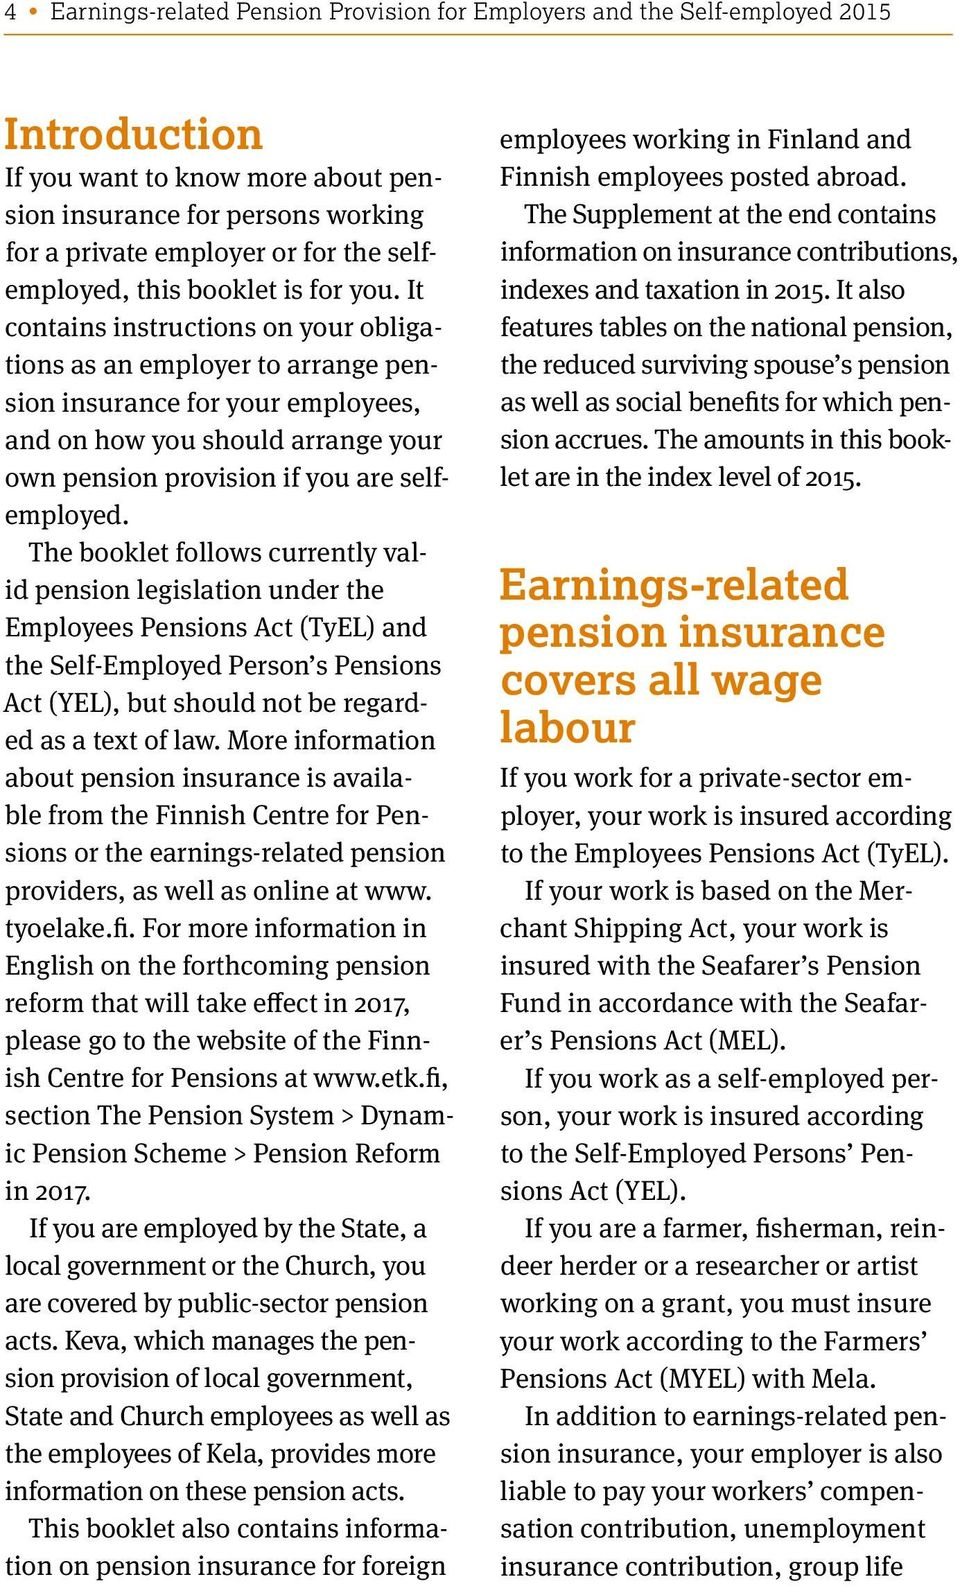 The booklet follows currently valid legislation under the Employees Pensions Act (TyEL) and the Self-Employed Person s Pensions Act (YEL), but should not be regarded as a text of law.